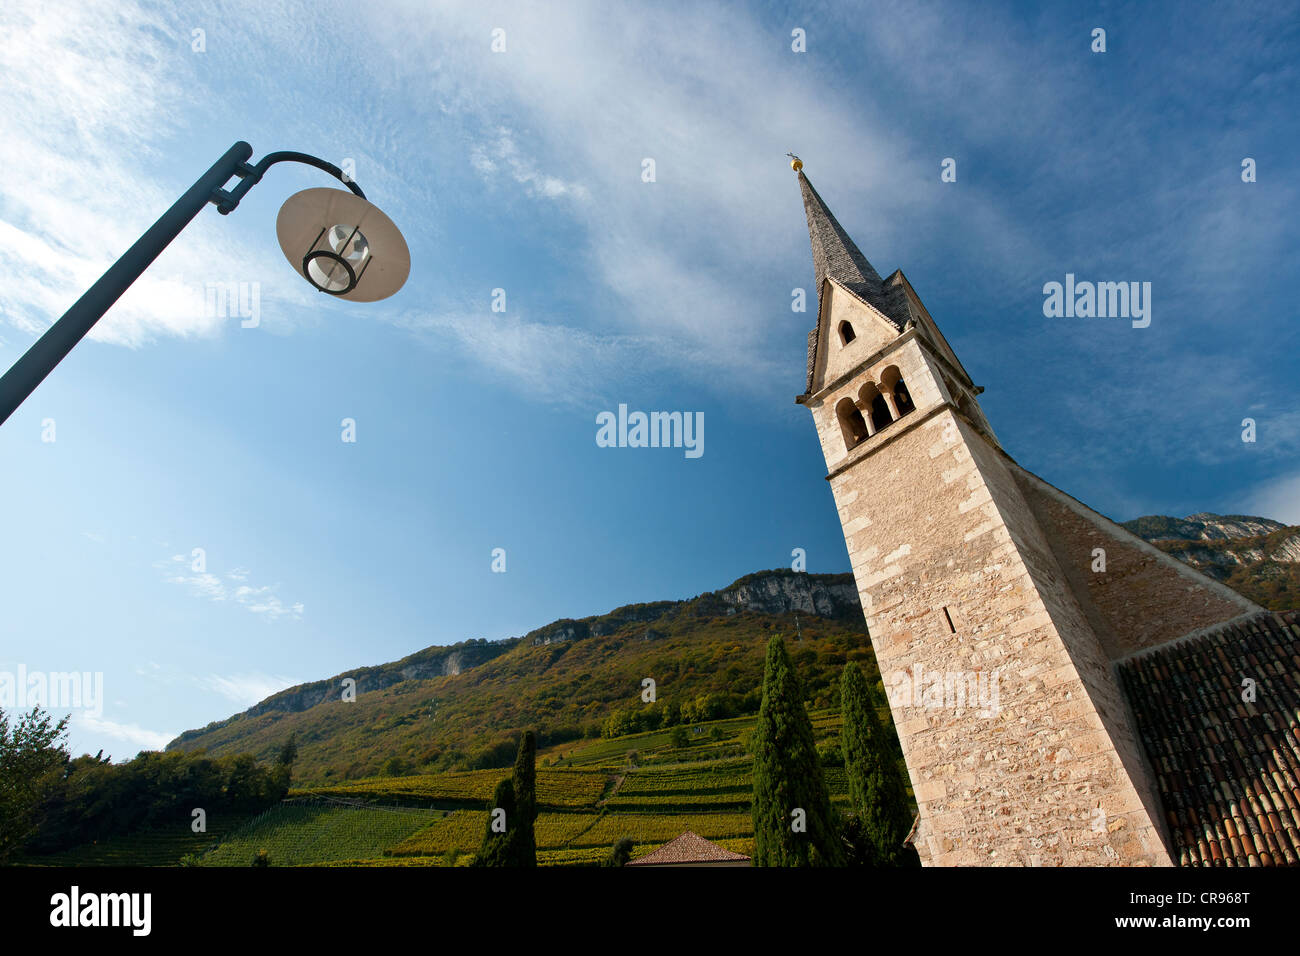 Steeple of the church of St. Valentine in Tramin, South Tyrol, Italy, Europe - Stock Image